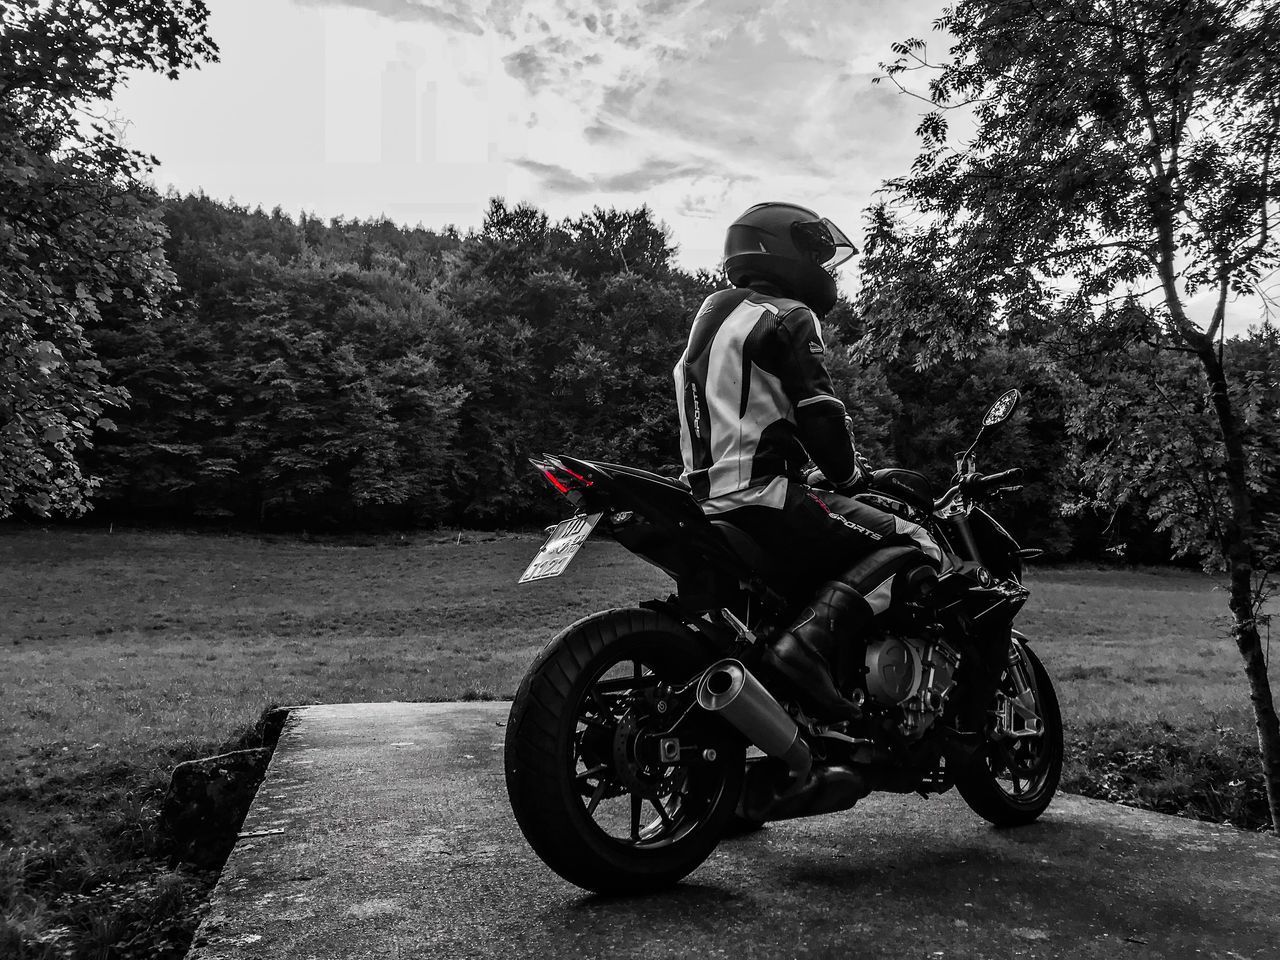 transportation, mode of transportation, helmet, motorcycle, one person, tree, plant, real people, land vehicle, riding, ride, nature, headwear, day, full length, lifestyles, leisure activity, sports helmet, men, biker, crash helmet, outdoors